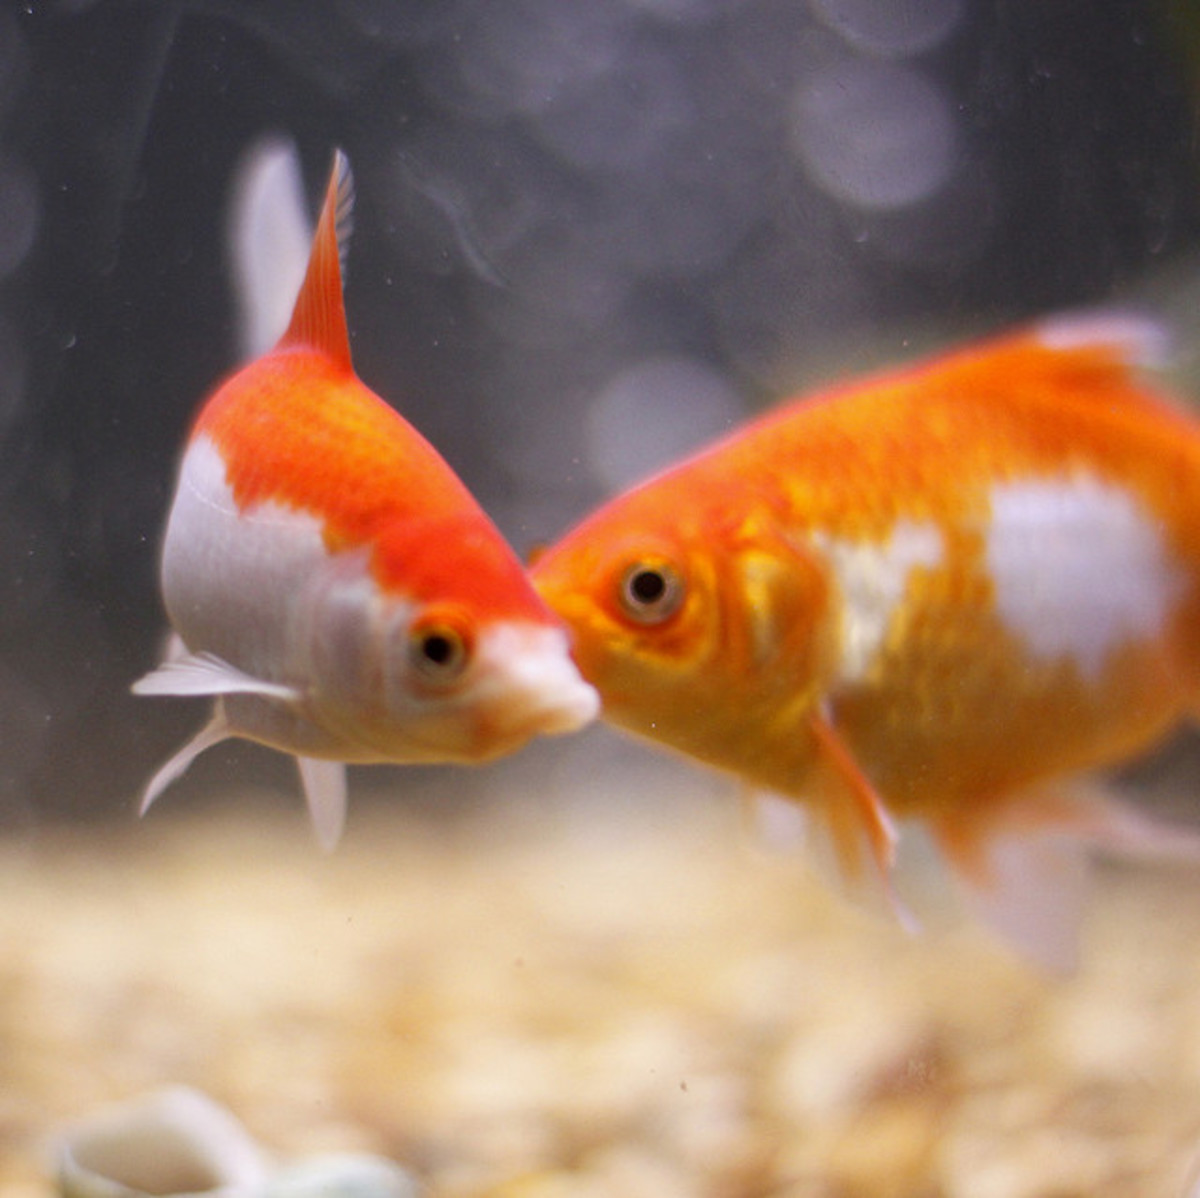 Looks like a Creamsicle and a Twinkie to me. (See the cream-filled center on the goldfish on the right?)